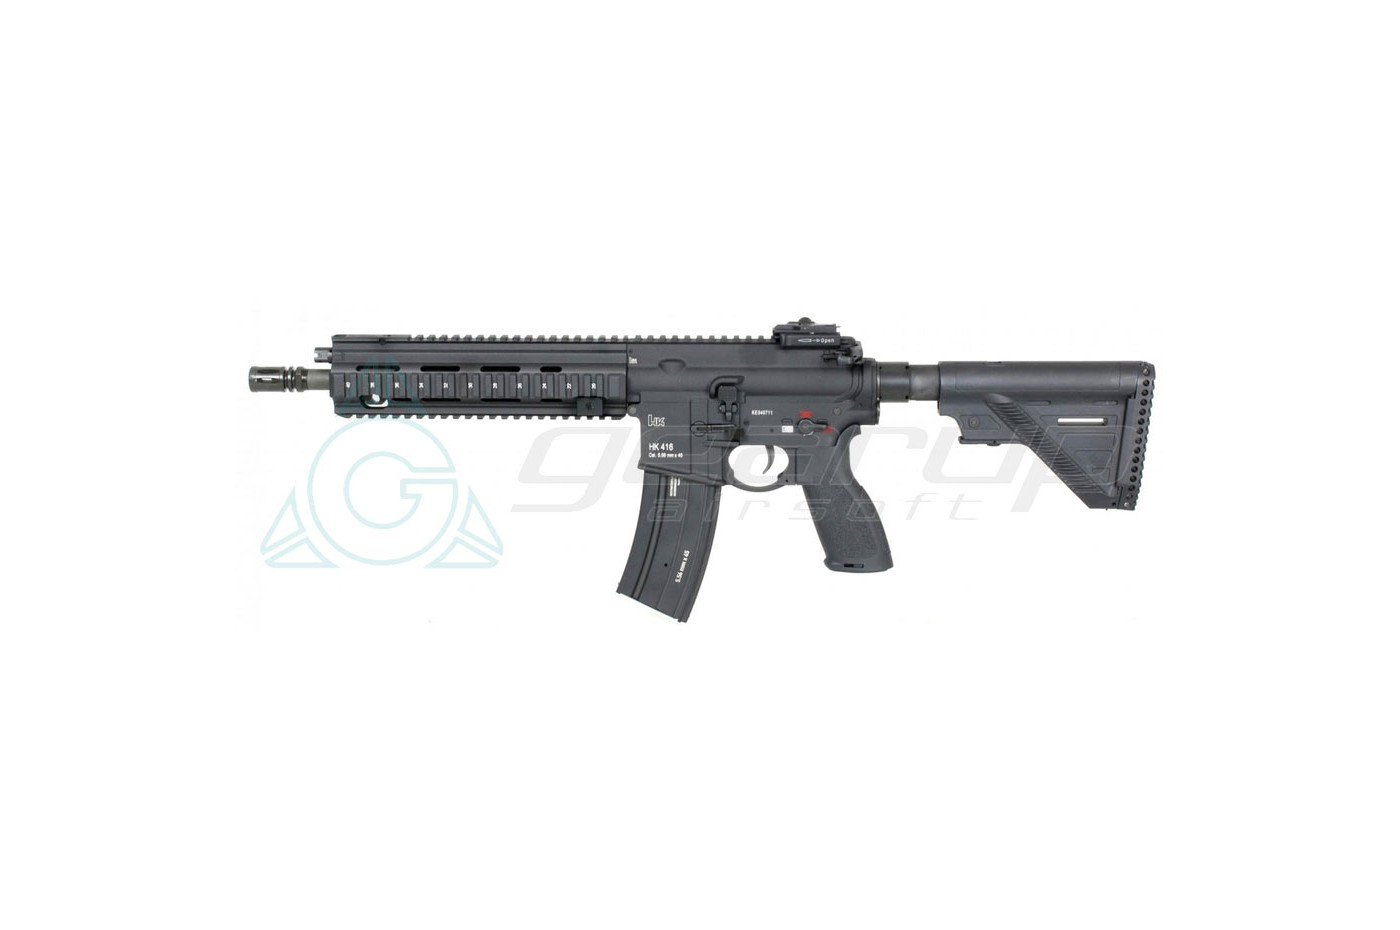 VFC/Umarex HK416 A5 AEG (with AVALON Gearbox)